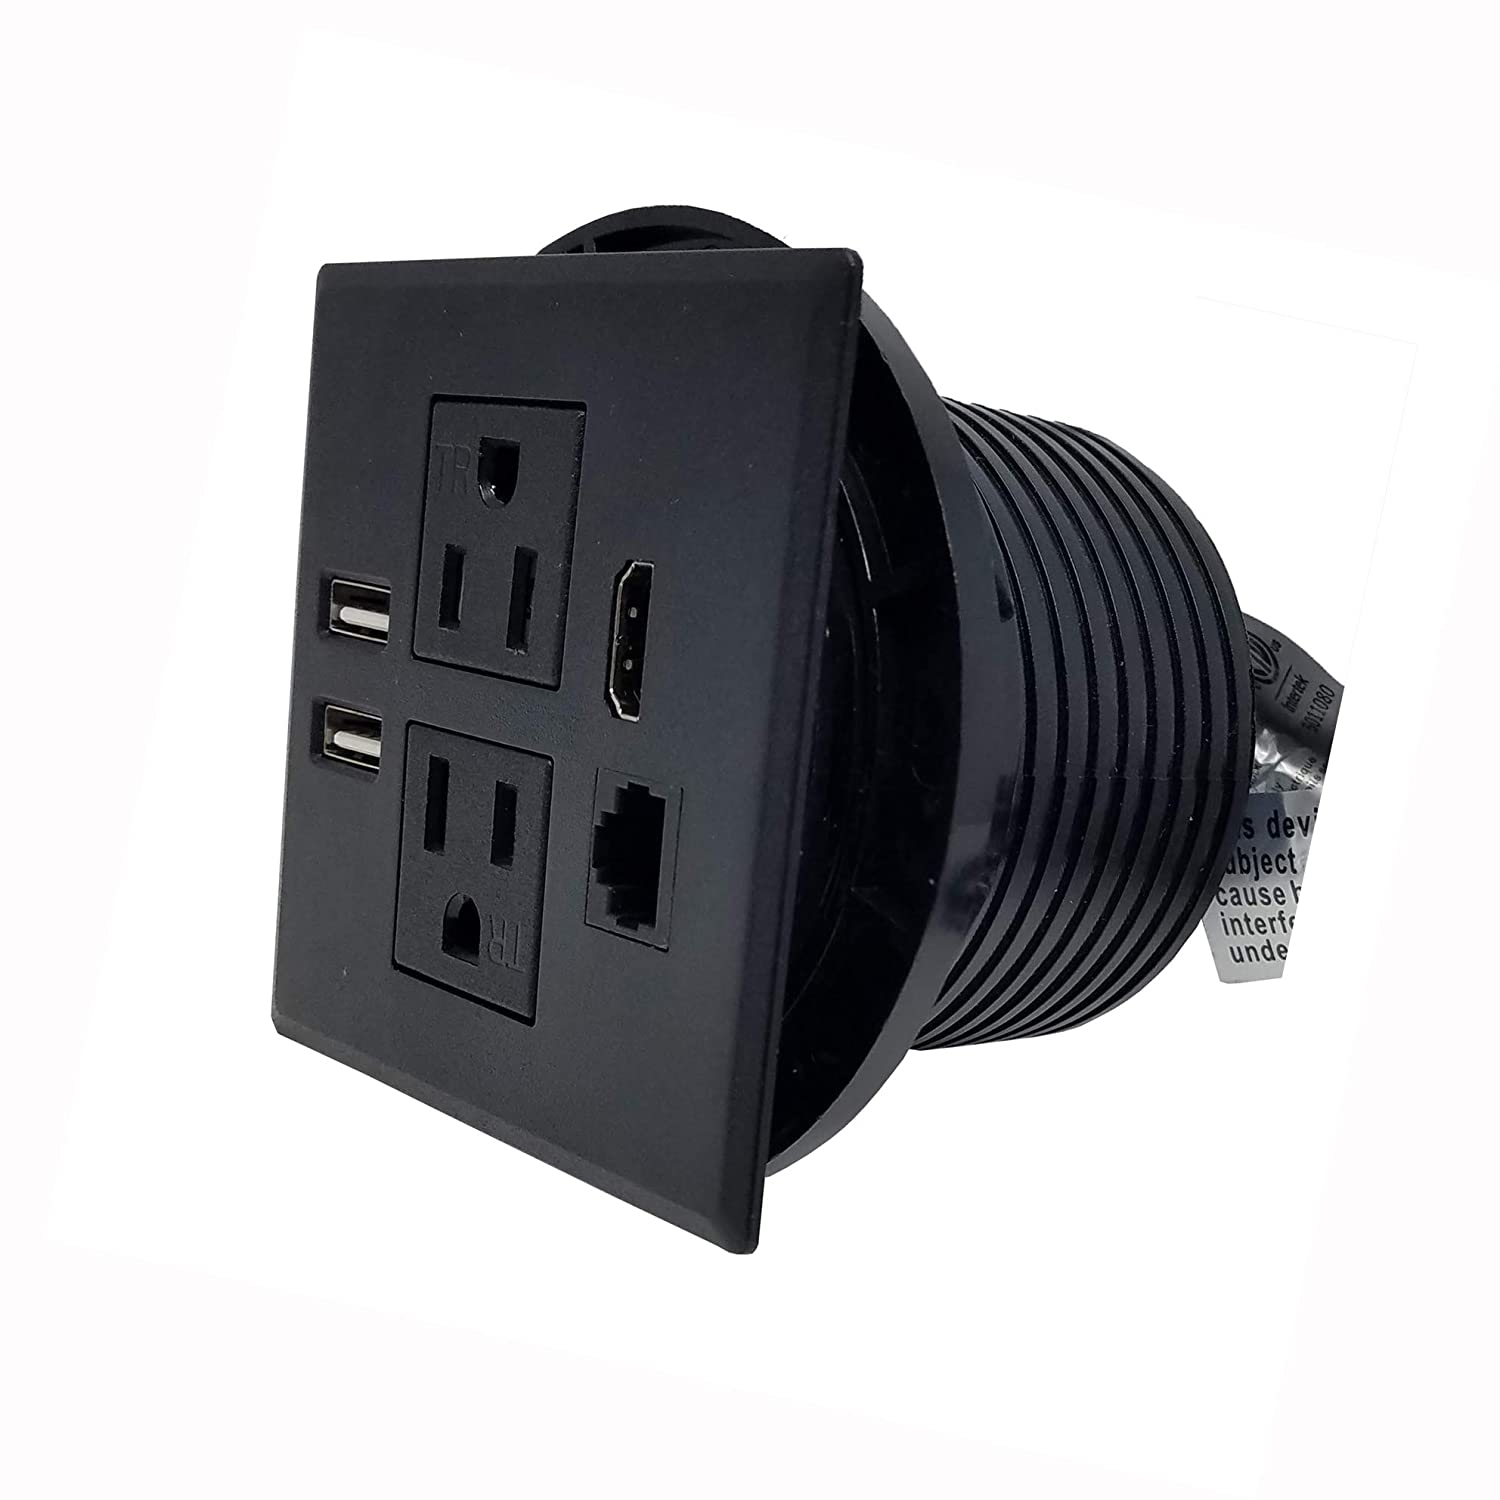 "Desktop Conference Room Power Grommet Outlet, FITS 3 1/8"" - 3 1/4"" 2 (TR) AC Outlets, 2 USB Charging Ports, 1 CAT 6, 1 HDMI, ETL Listed (BLACK - 3.15"" - 3.25"" - DC-8589)"